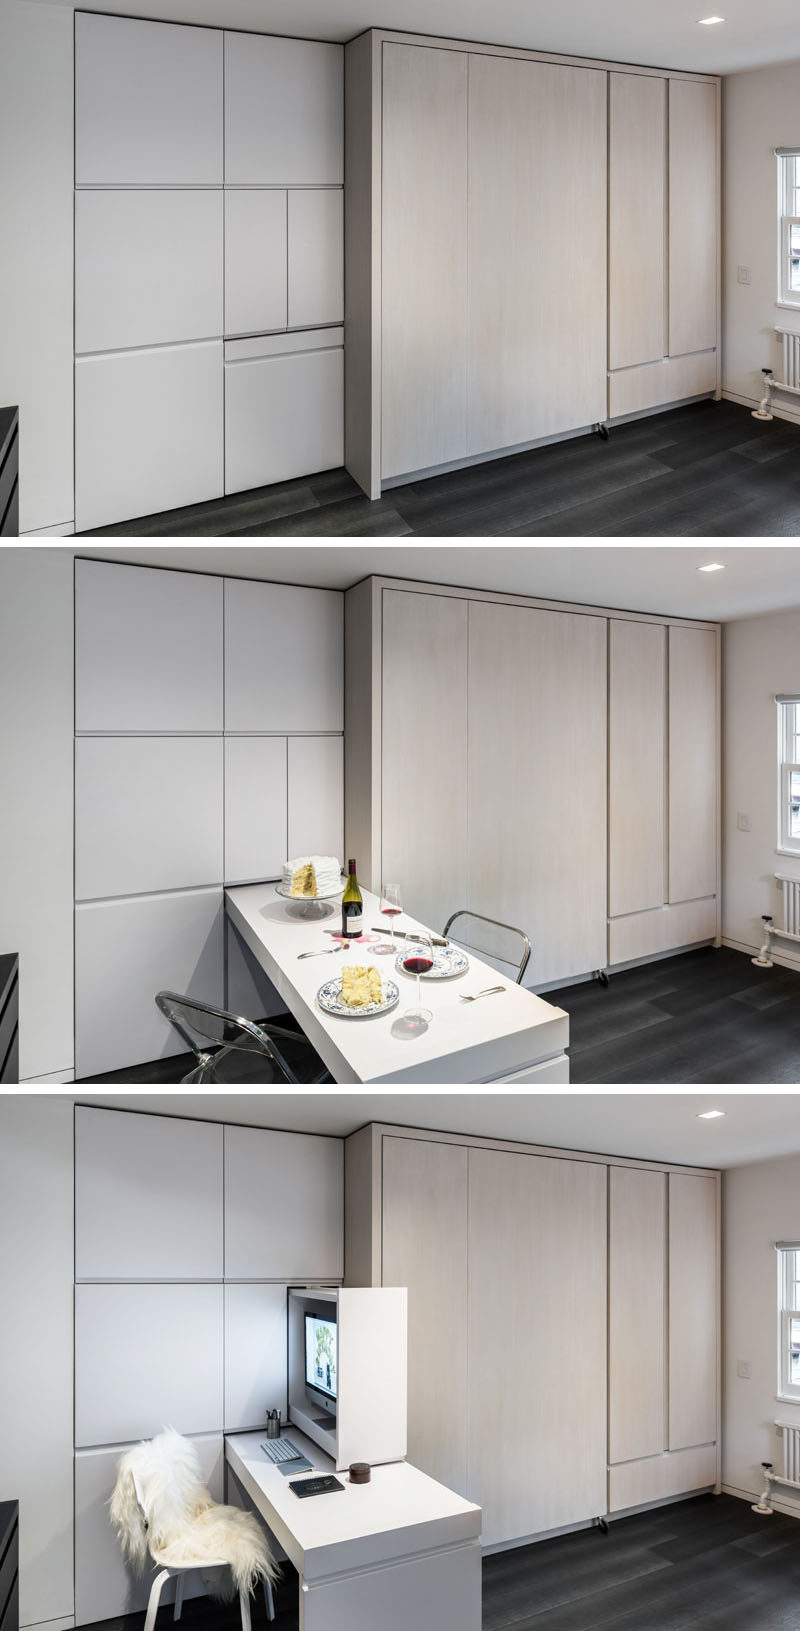 This micro apartment has wall of cabinets. There's a pull-out dining table, that also doubles as a desk. Just above the pull-out table there are two cabinets, one is home to a small pantry, and the one next to it is home to a computer.